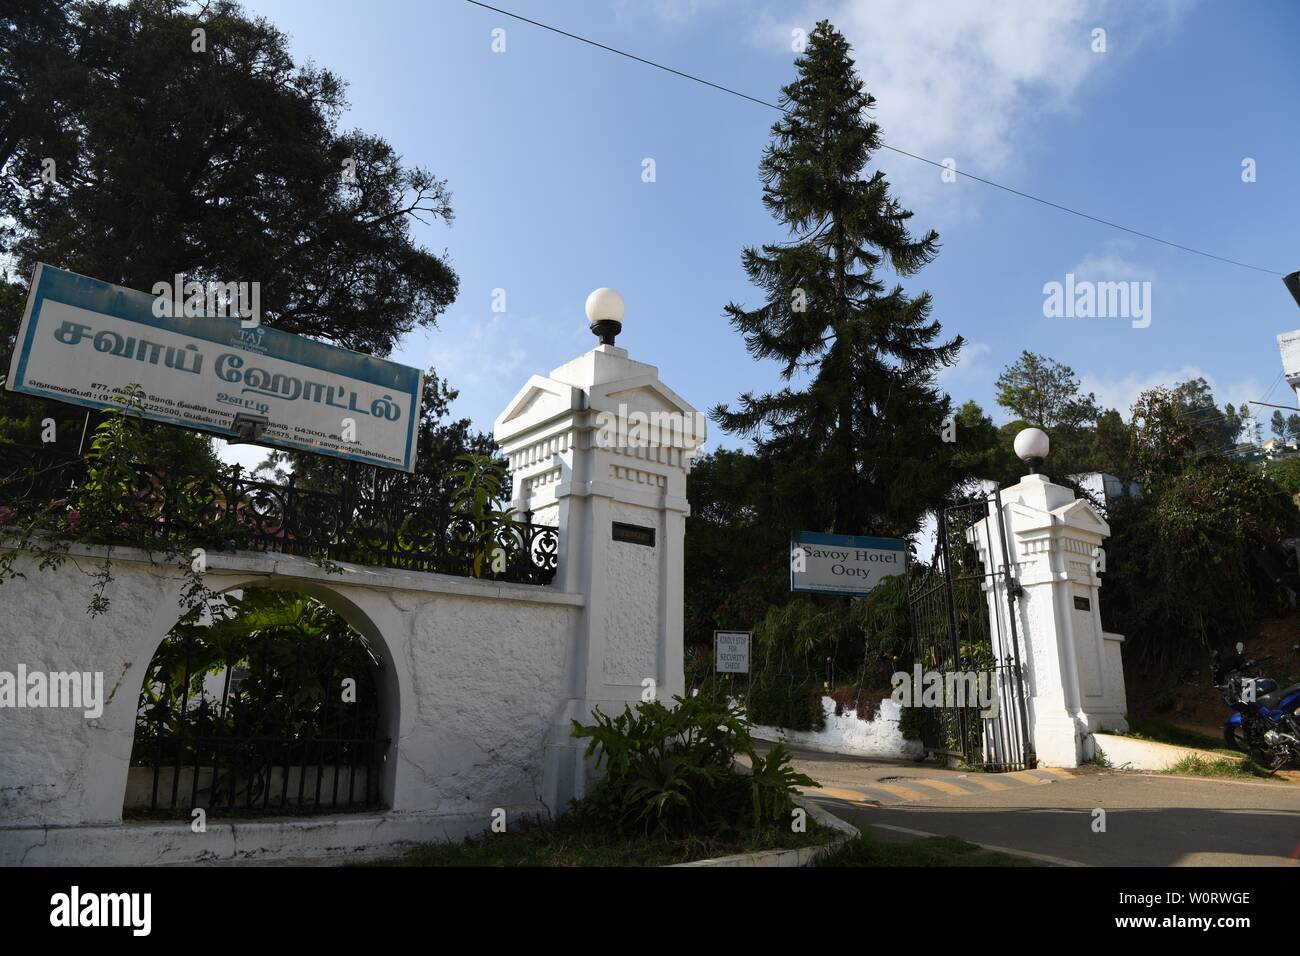 The Savoy Hotel, Ooty, India - Stock Image